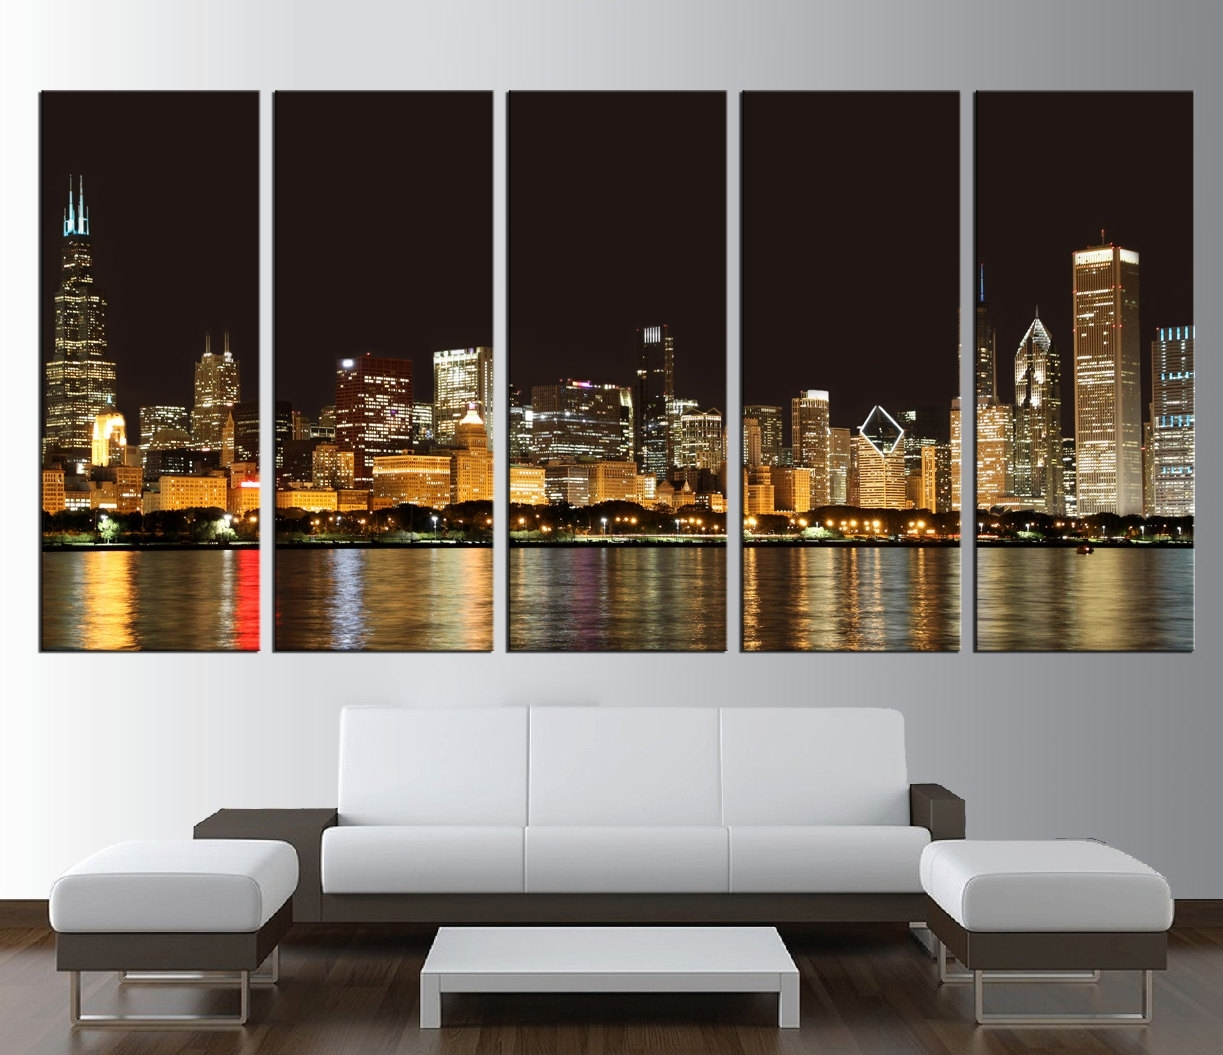 Peaceful Design Ideas Chicago Wall Art Modern Home Designs Large intended for Chicago Wall Art (Image 18 of 20)